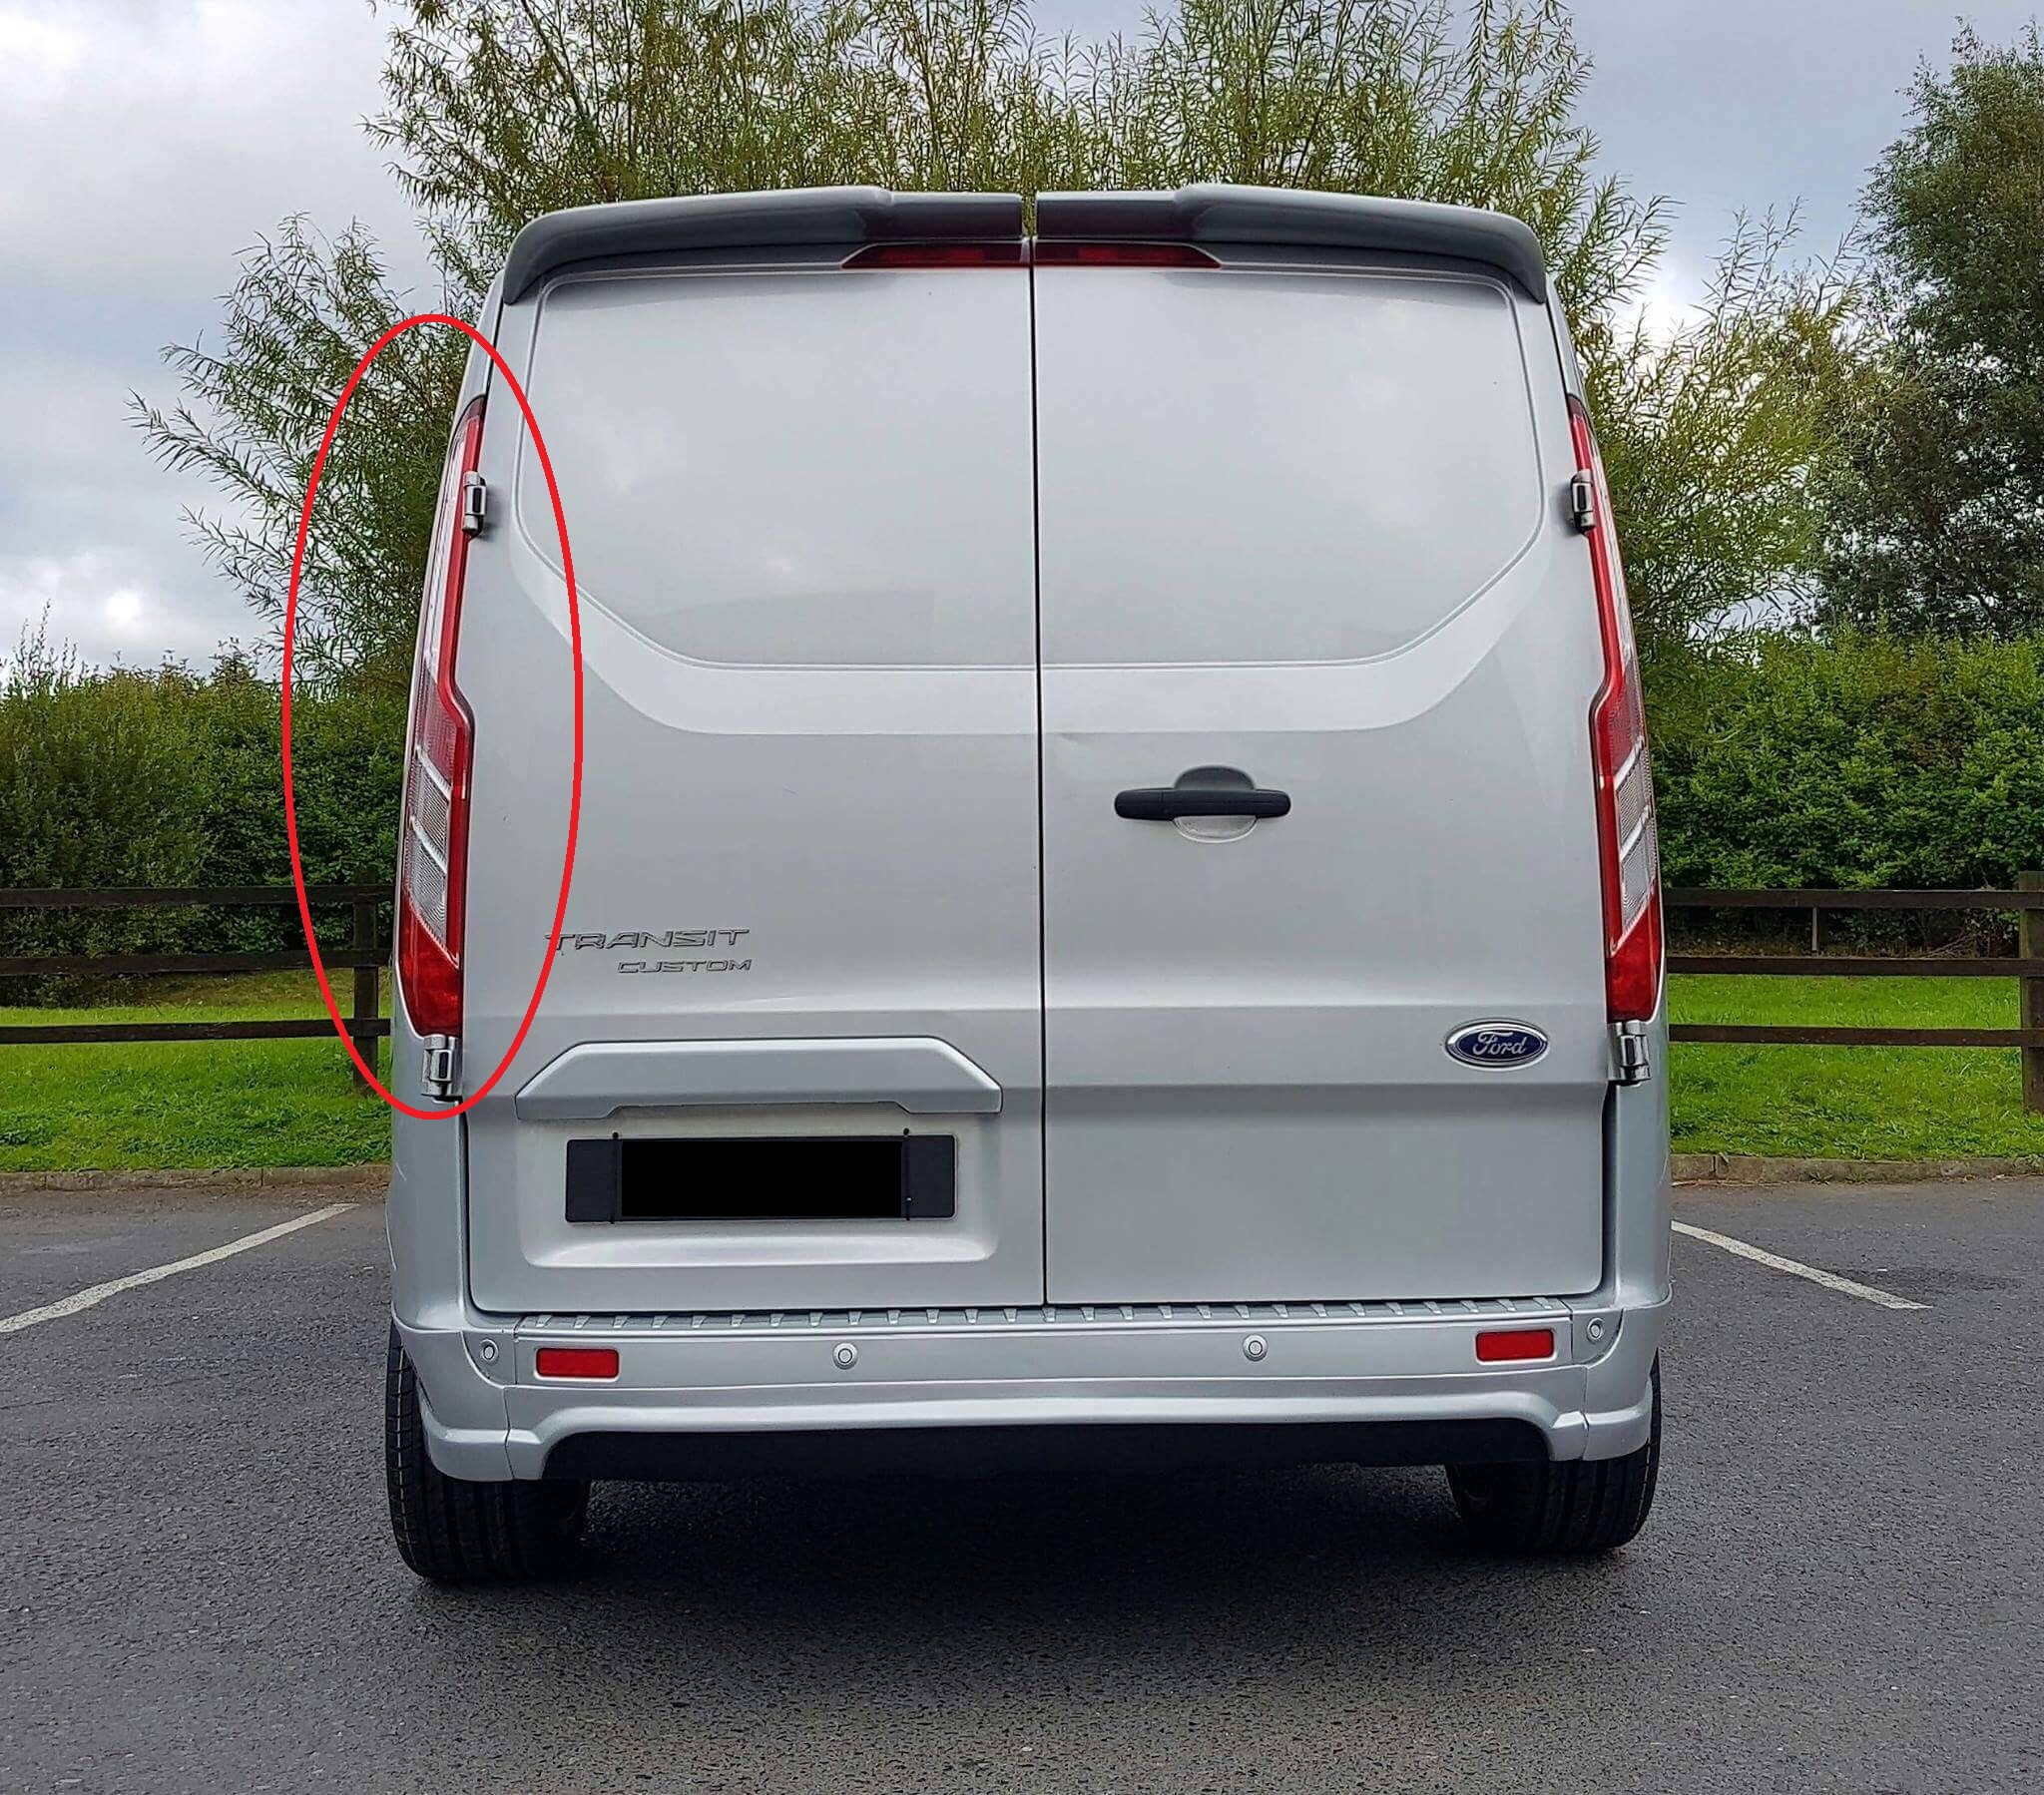 Ford transit custom Rear light left side